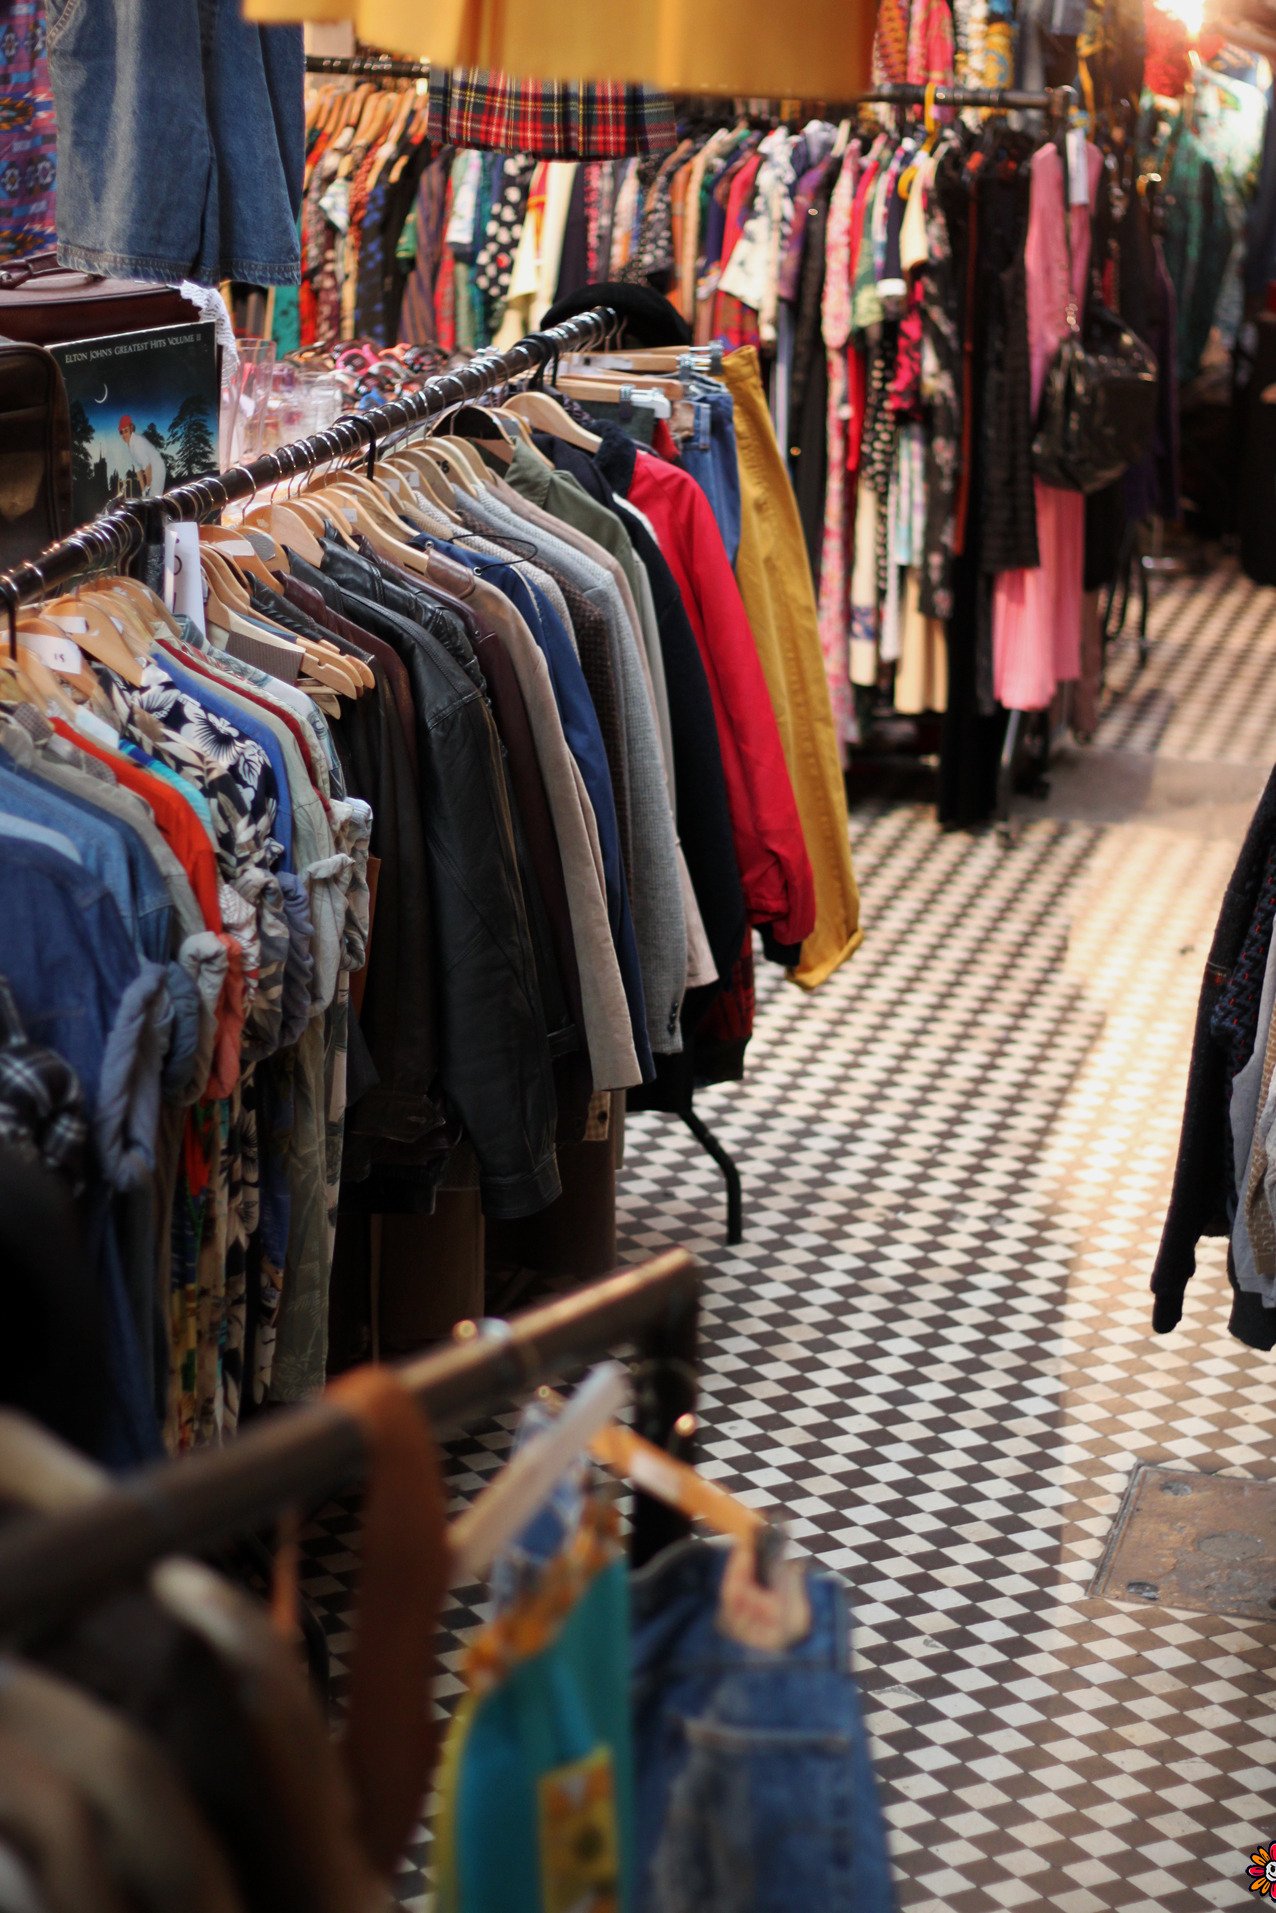 How to Look for Underpriced Goods at Garage Sales and Thrift Stores